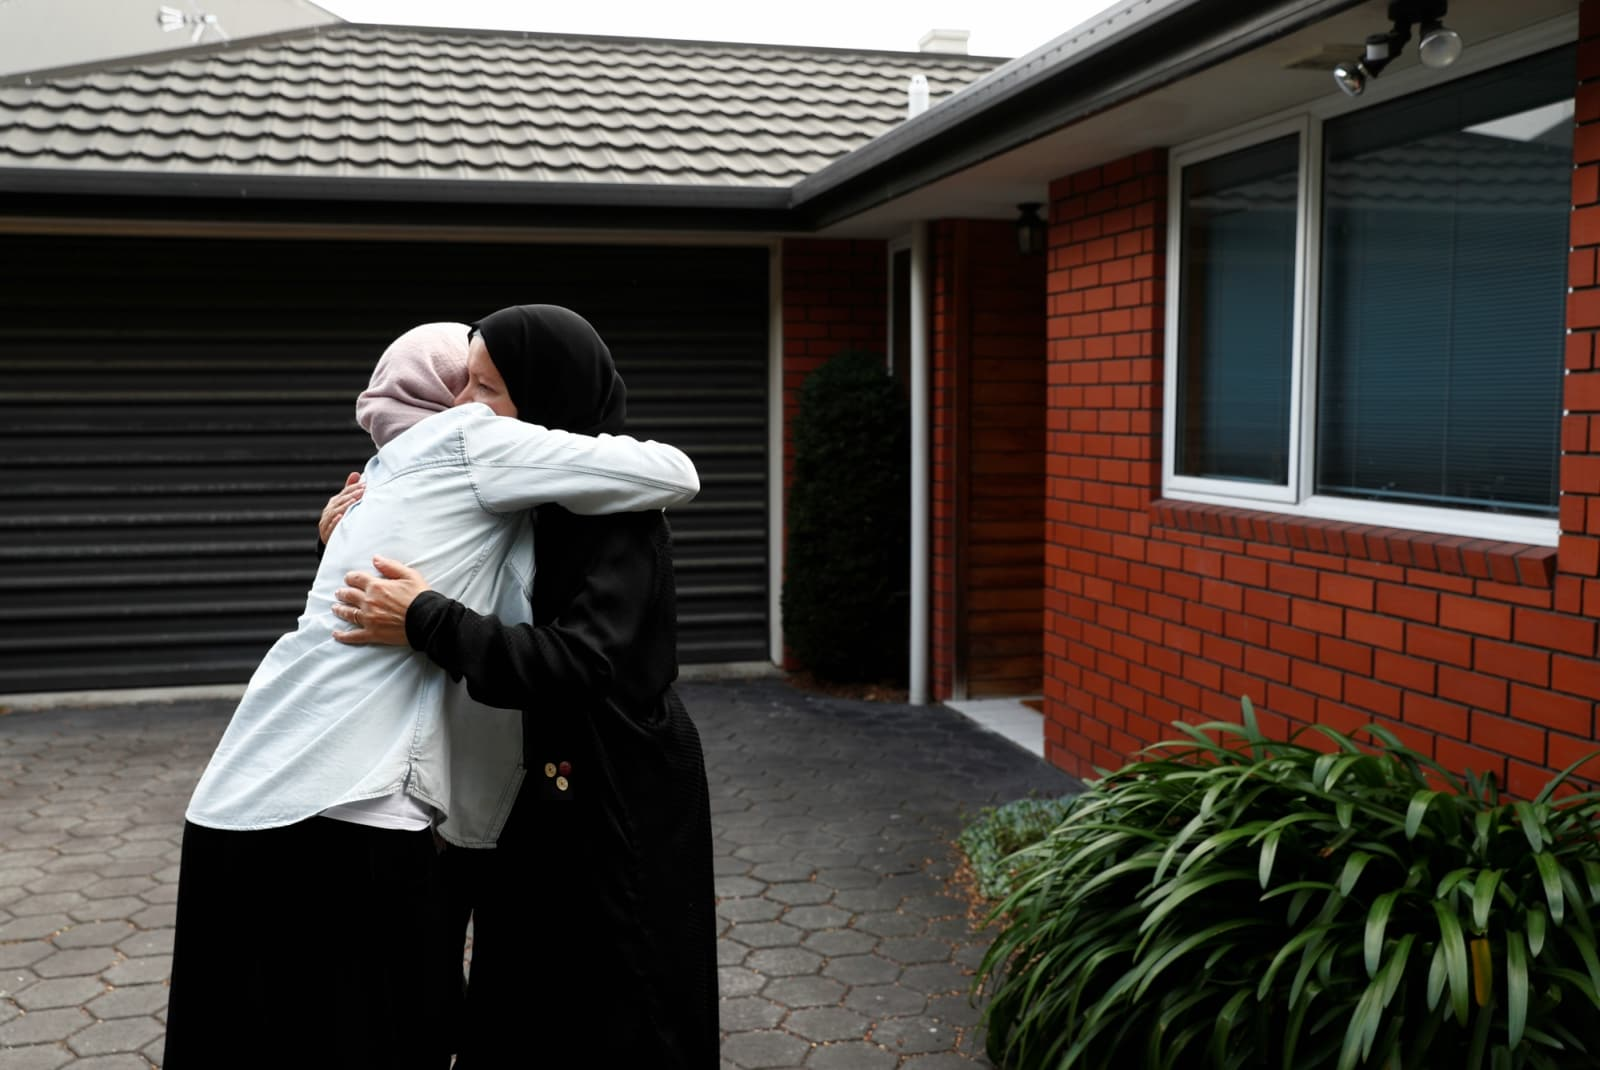 Zahra Fathy, the widow of 70-year-old Hussein Moustafa, an Egyptian immigrant who lost his life in the Christchurch shootings, embraces a neighbour who came to check on how Zahra was coping, outside her house in Christchurch, New Zealand March 30, 2019. REUTERS/Edgar Su